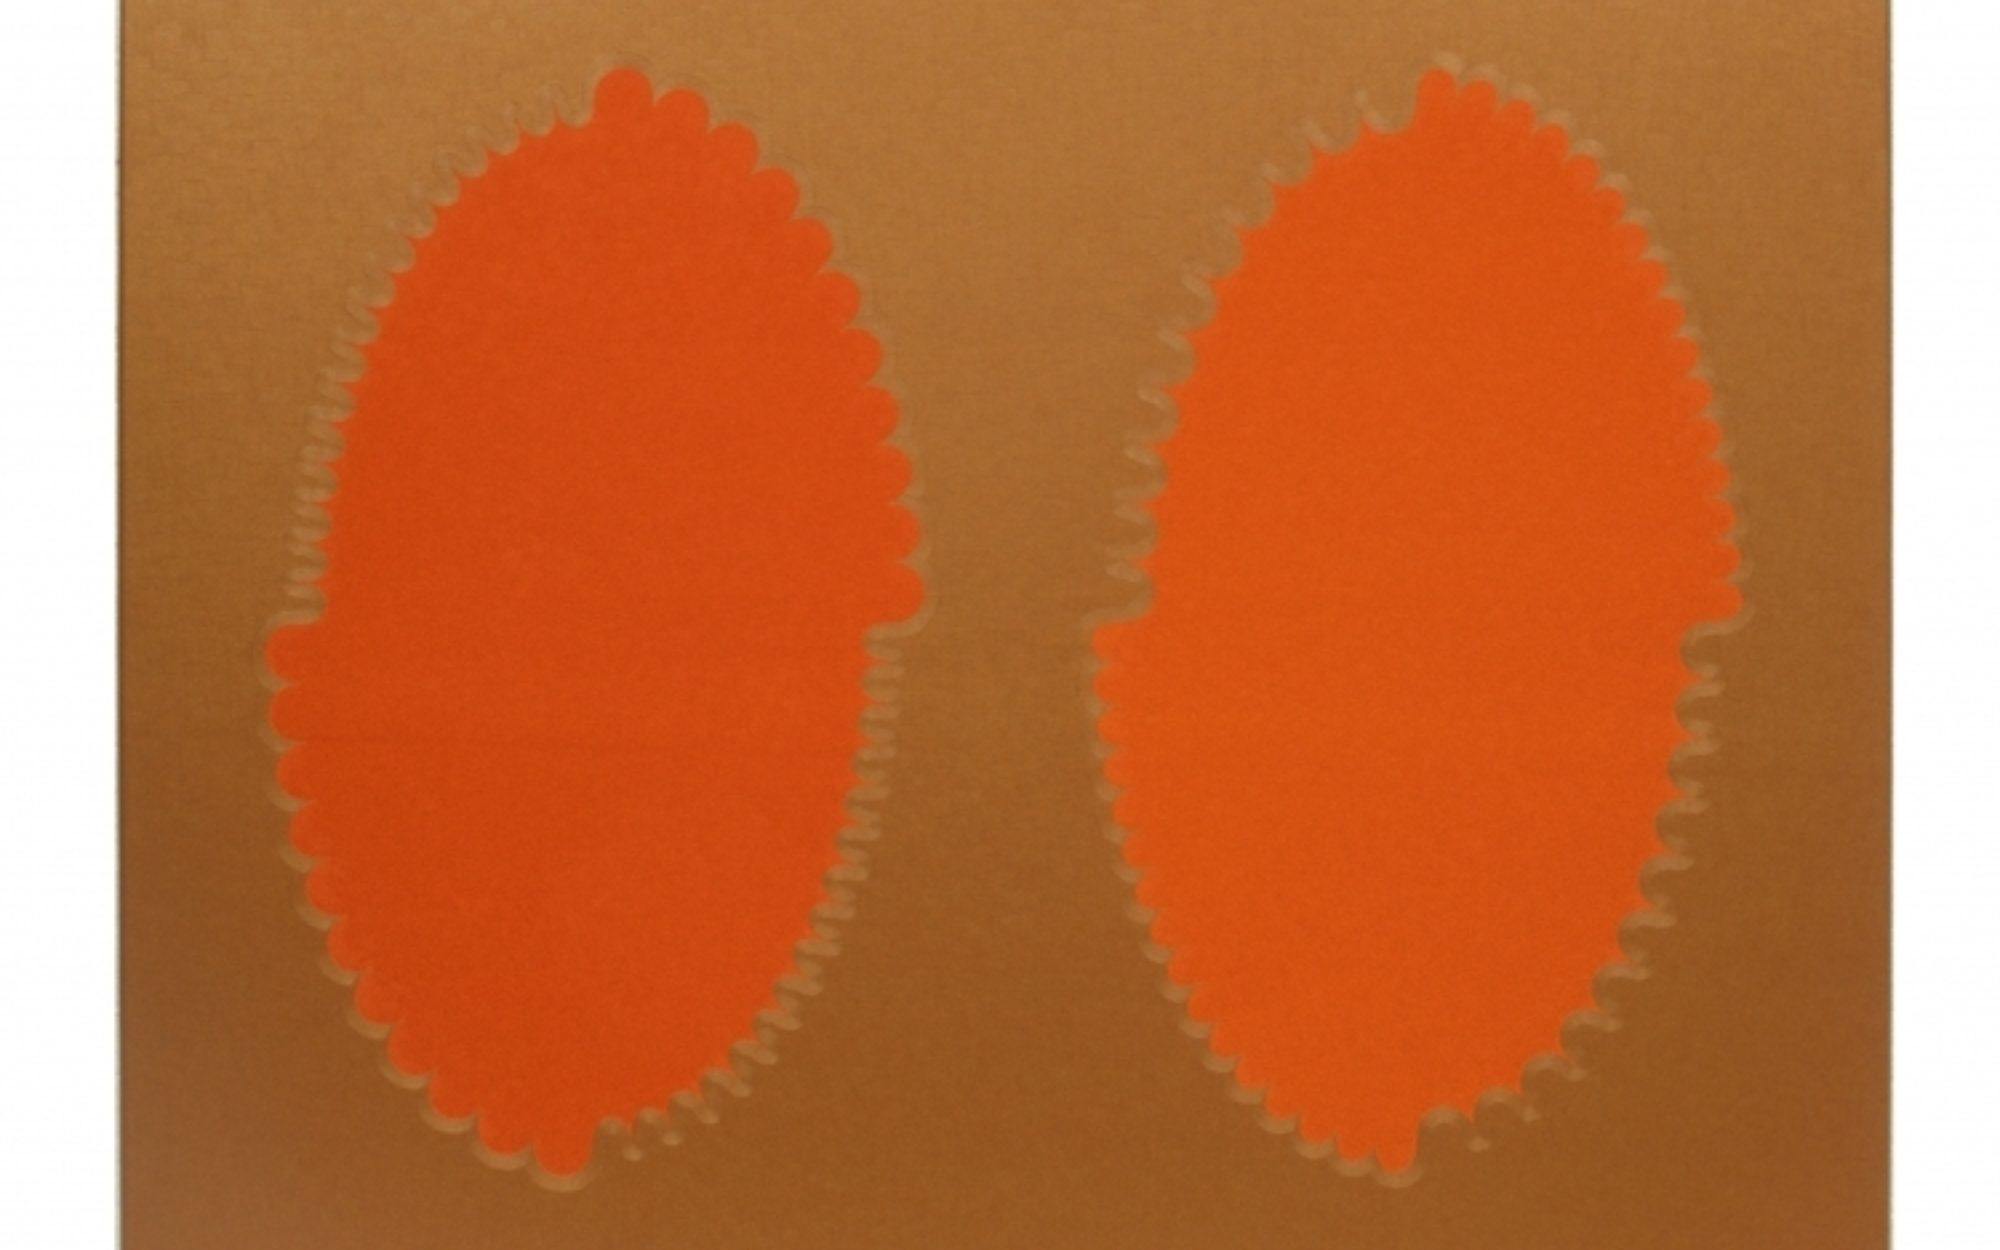 Two orange oval circles against a brown background